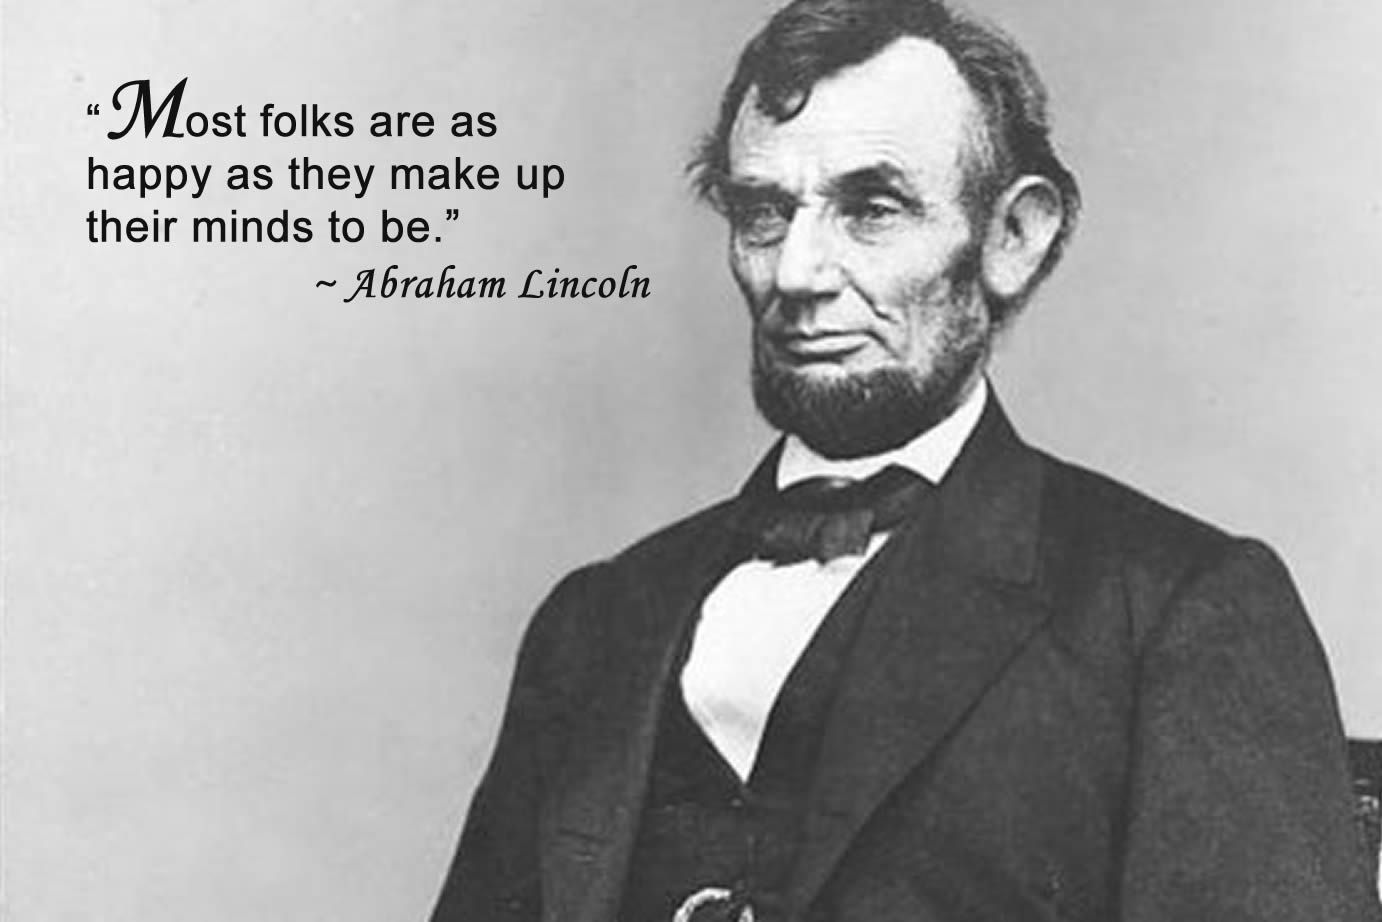 Pin by DayOfHappiness on What is Happiness? Lincoln